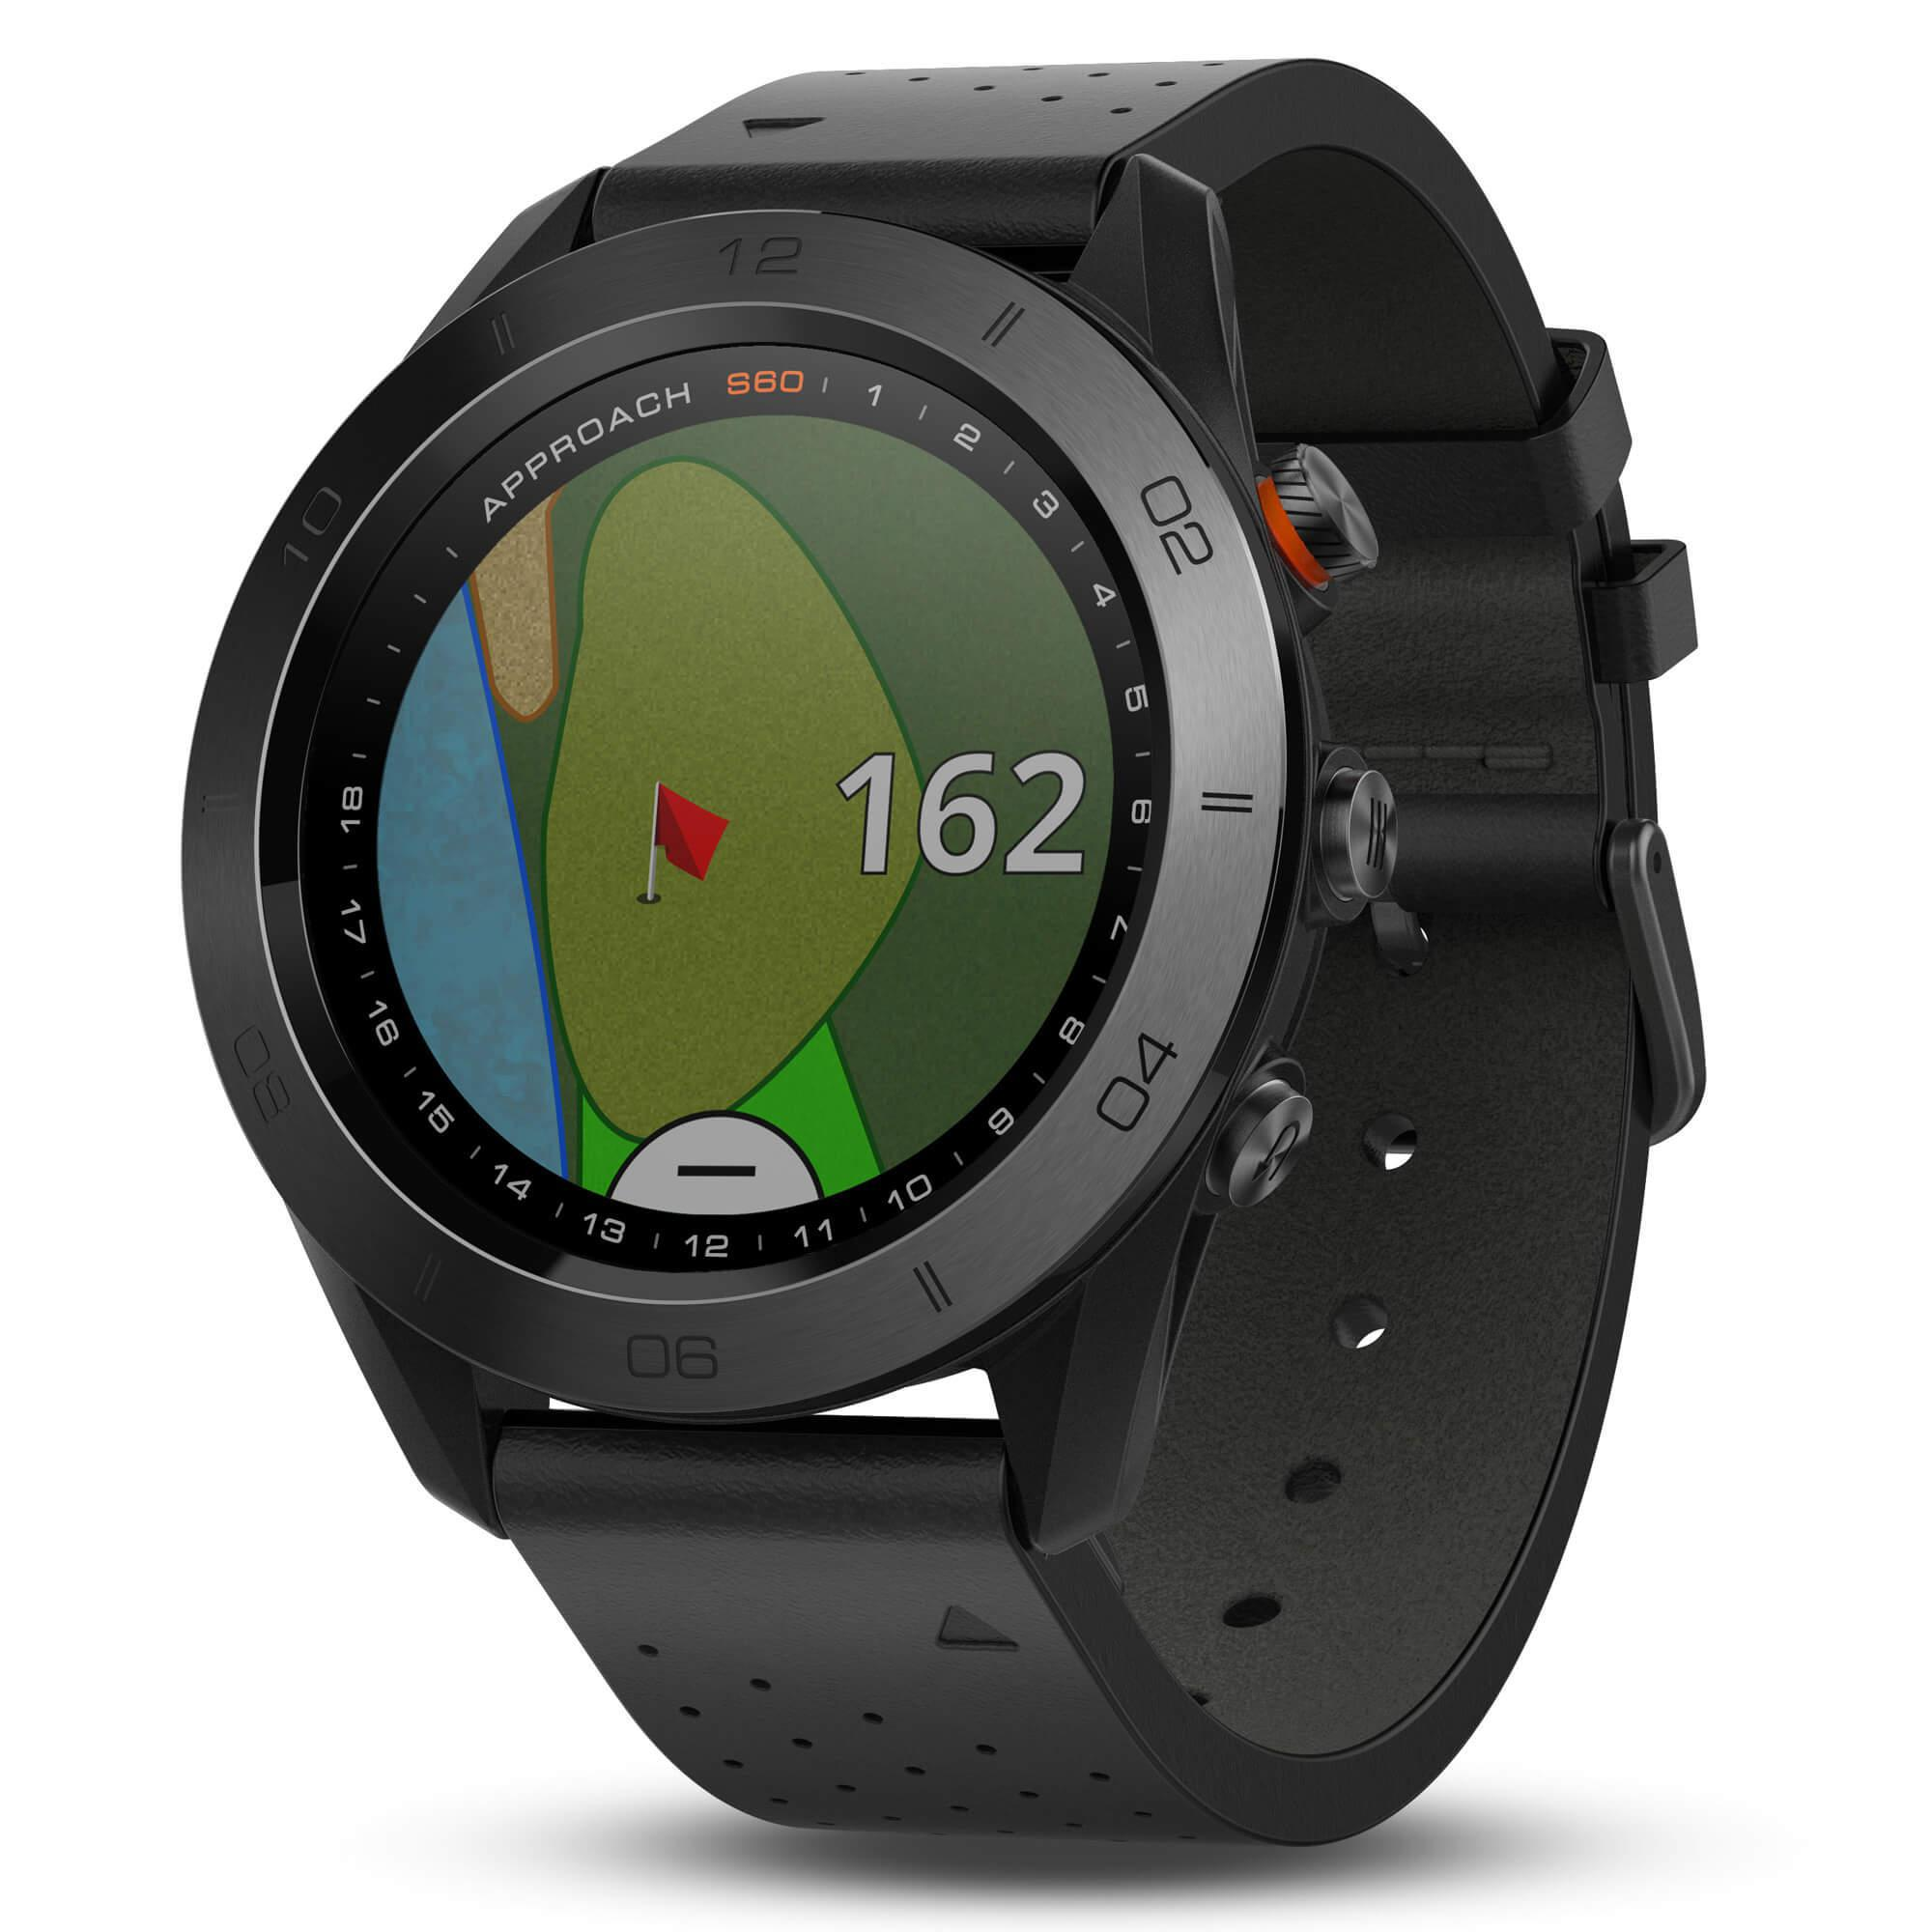 Garmin Approach S60 Premium Golf Watch in Black